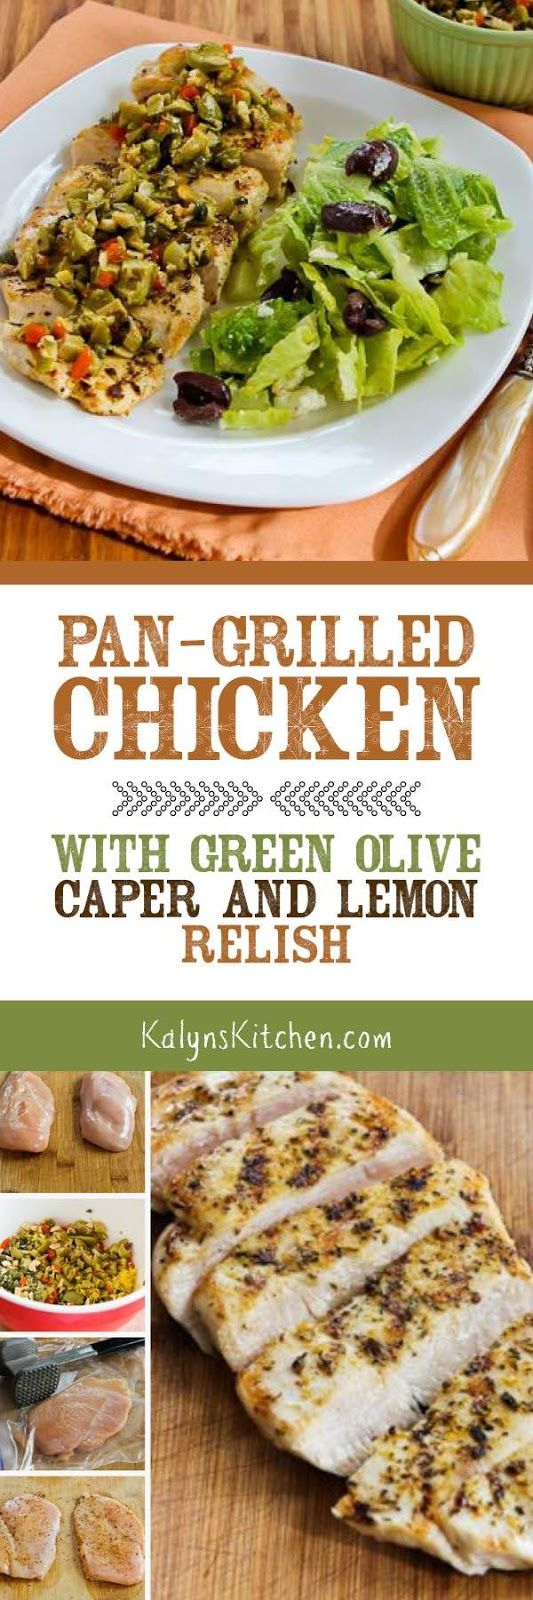 Green olive fans will love this easy Pan-Grilled Chicken with Green Olive…